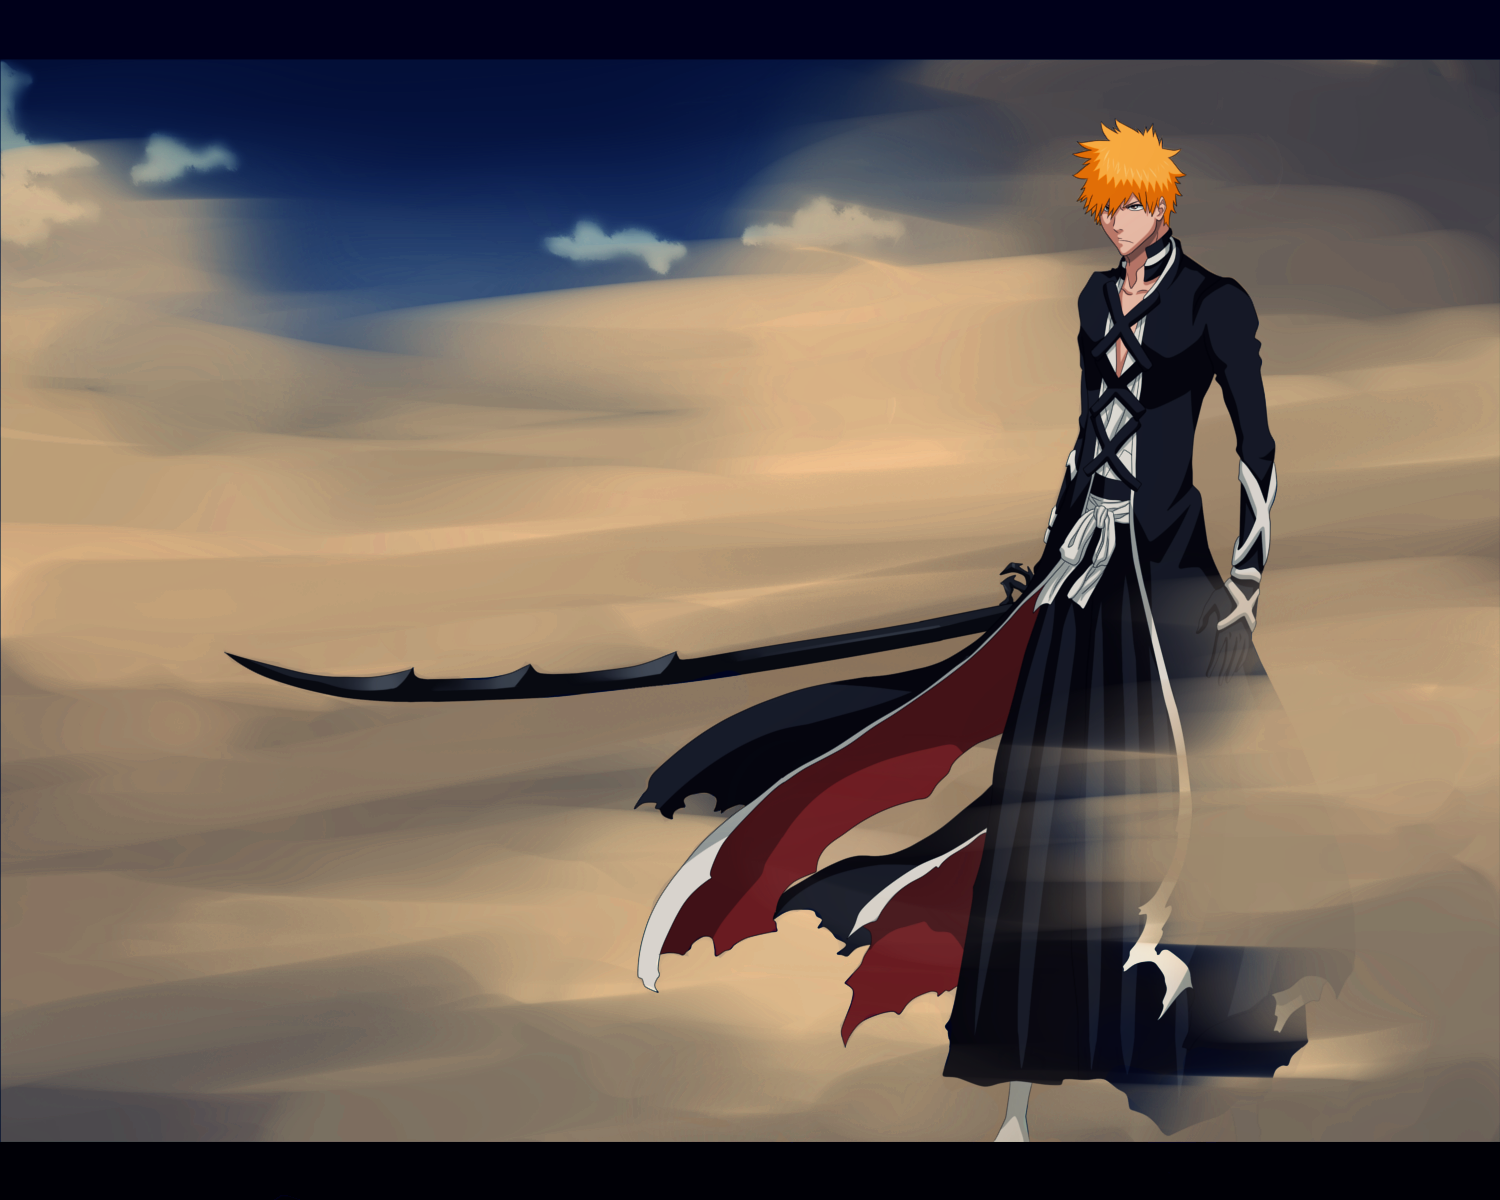 Ichigo S Tremendous Strength And Force Was Nothing Short Of Amazing It Proved To Be Something That Even Aizen Cou Ichigo Bankai Bleach Anime Bleach Characters